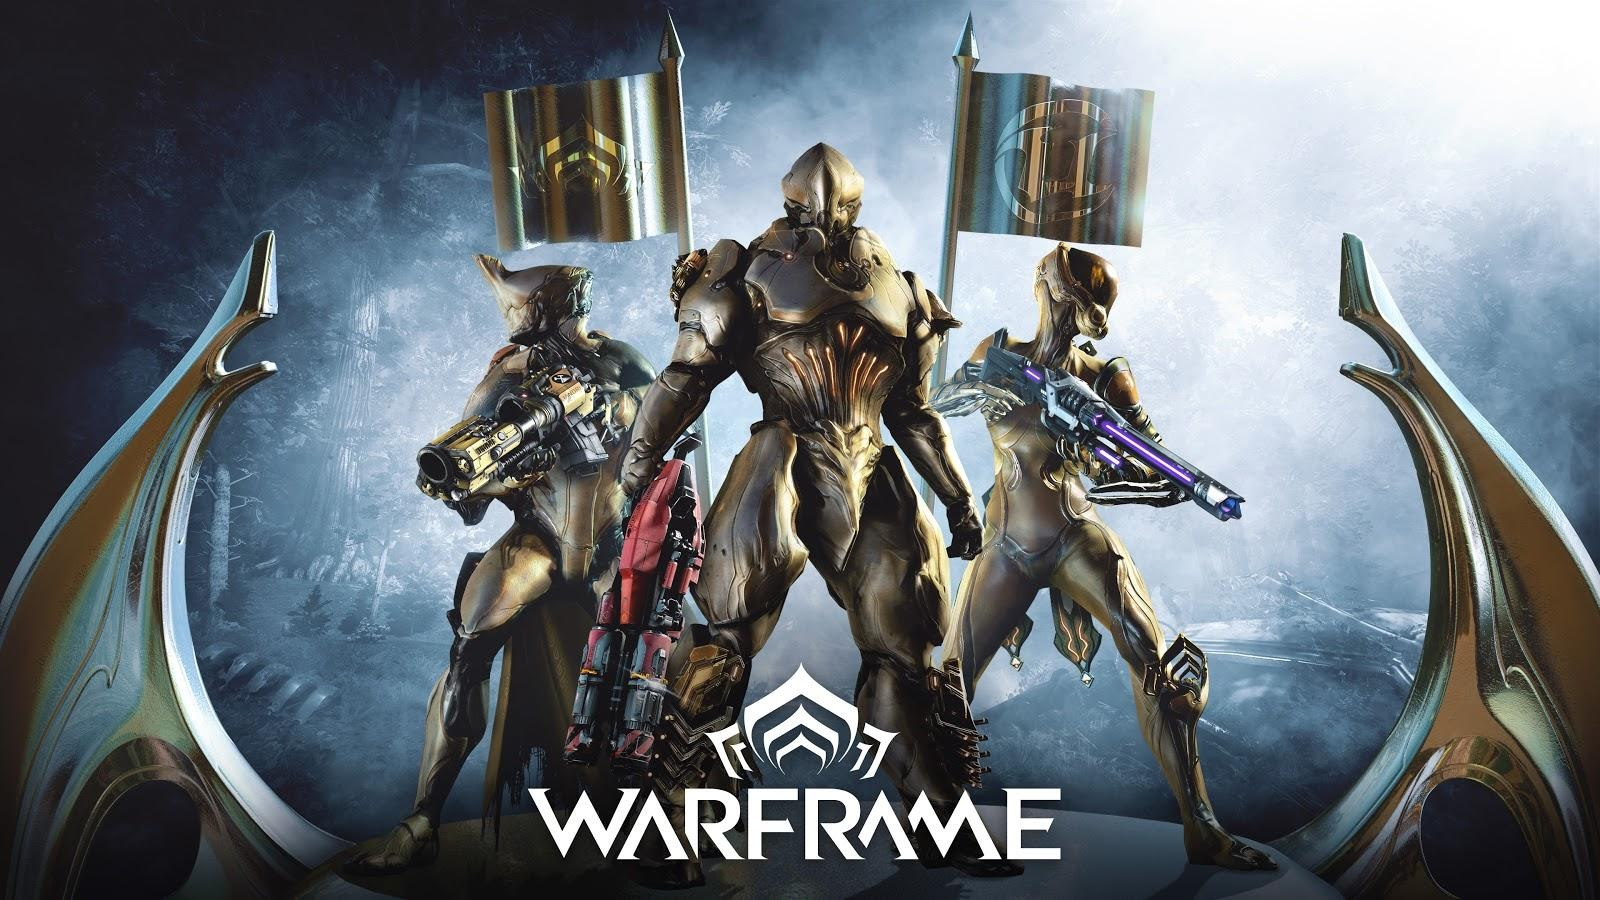 UNREAL TOURNAMENT AND WARFRAME CREATORS UNVEIL LEGENDARY WEAPON BUNDLE FOR THE EPIC GAMES STORE AT THE GAME AWARDS 2020